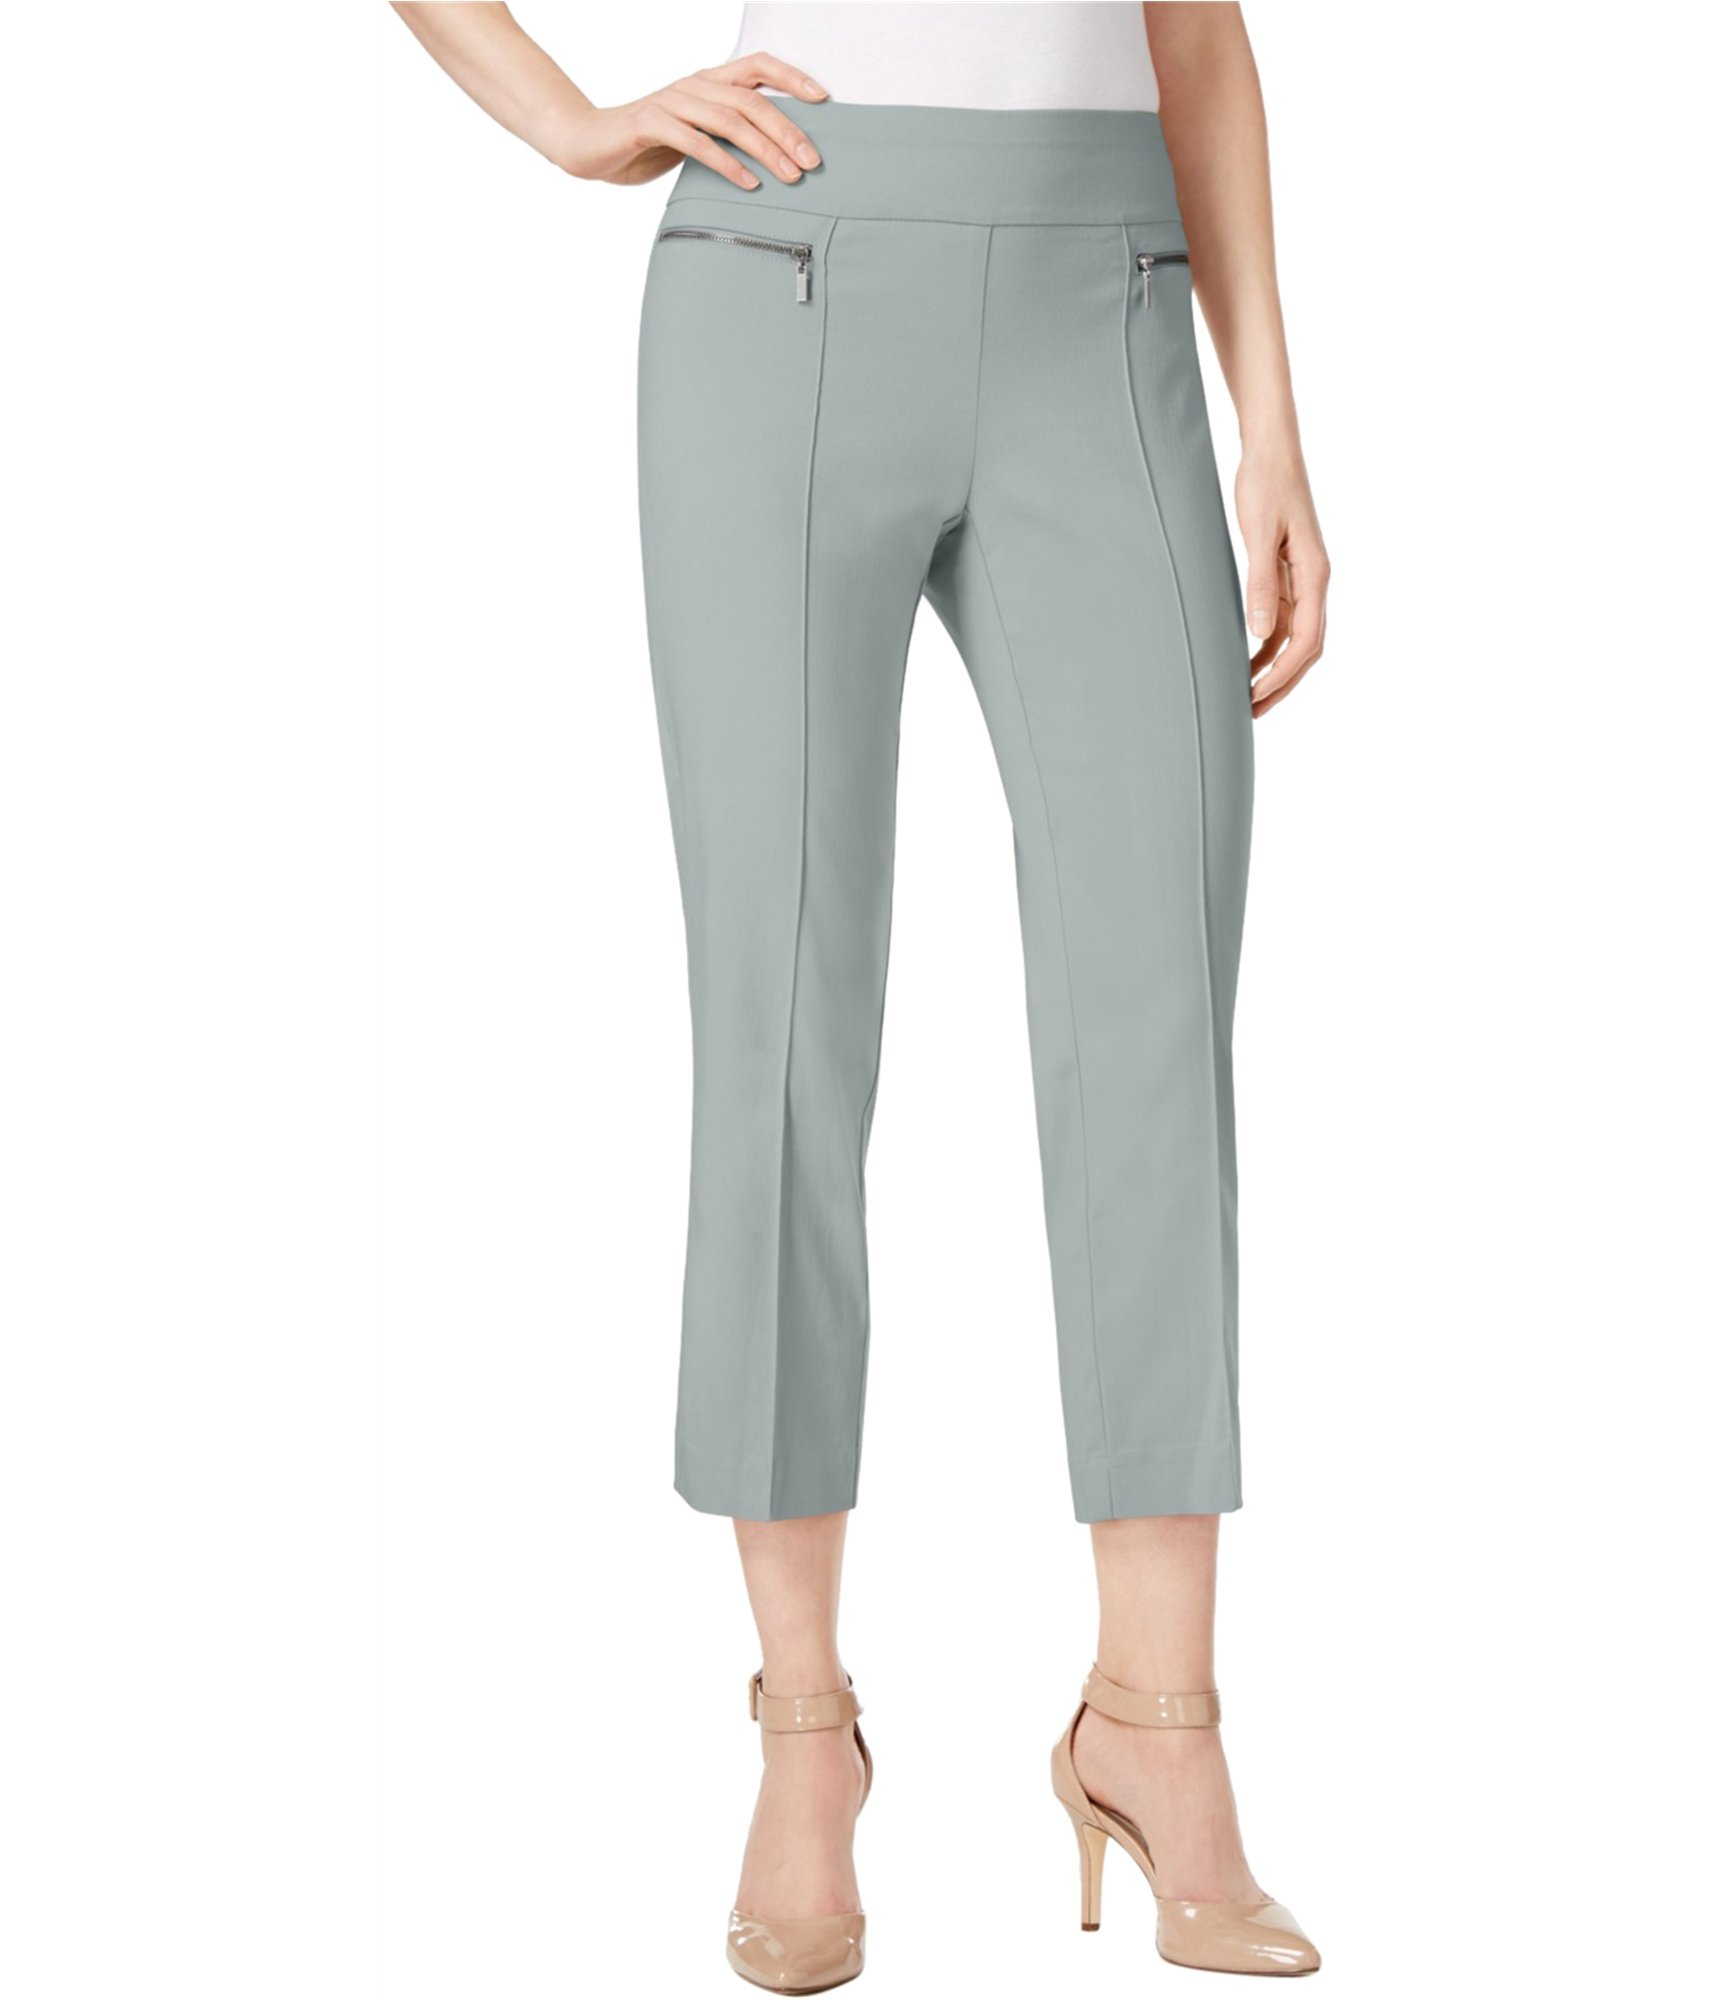 Style & Co. Womens Pull-On Casual Cropped Pants Grey M/23